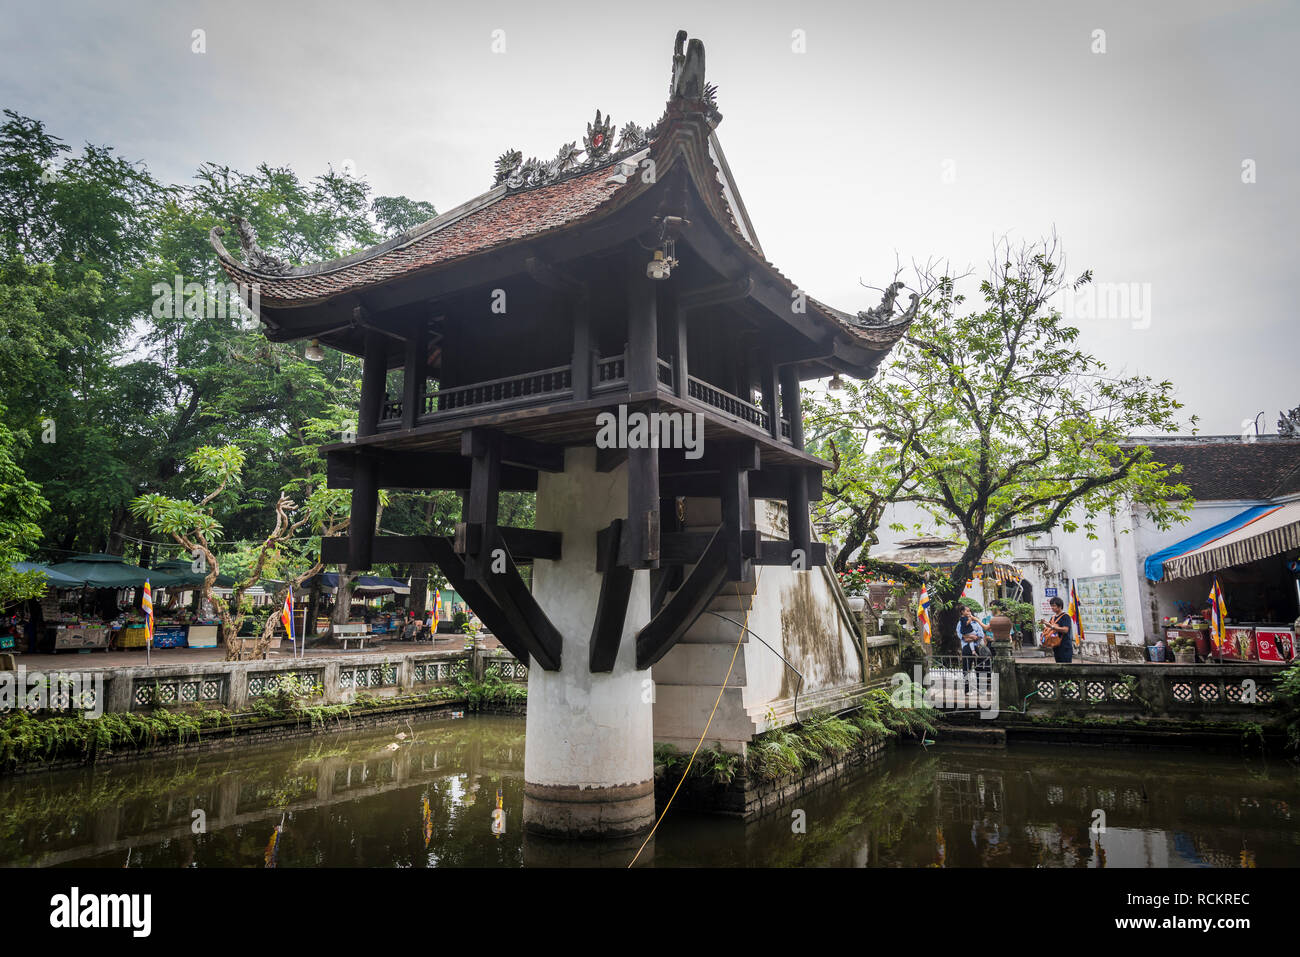 One Pillar Pagoda, a historic Buddhist temple built during Ly Dynasty in the 11th century, Hanoi, Vietnam - Stock Image